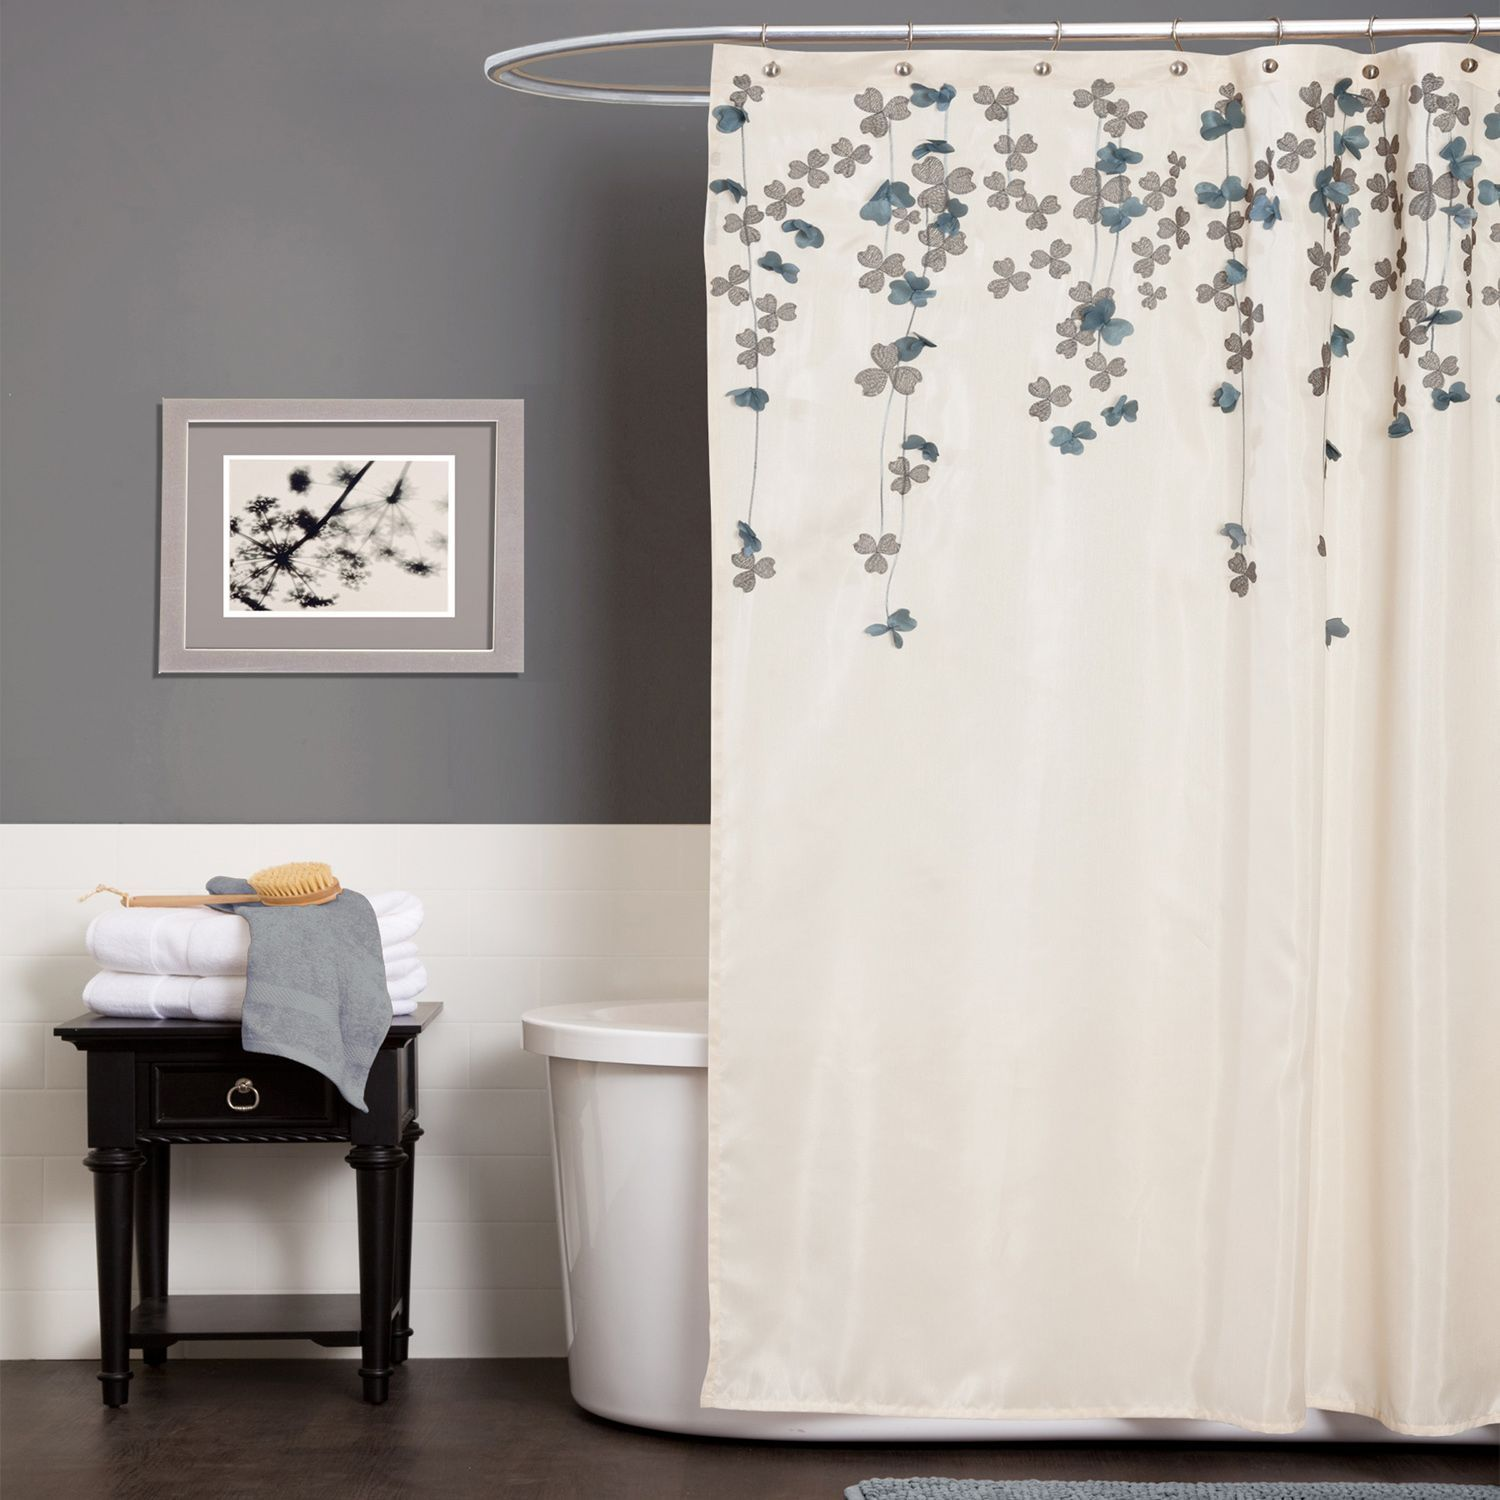 Funky Shower Curtains To Spruce Up Your Bathroom